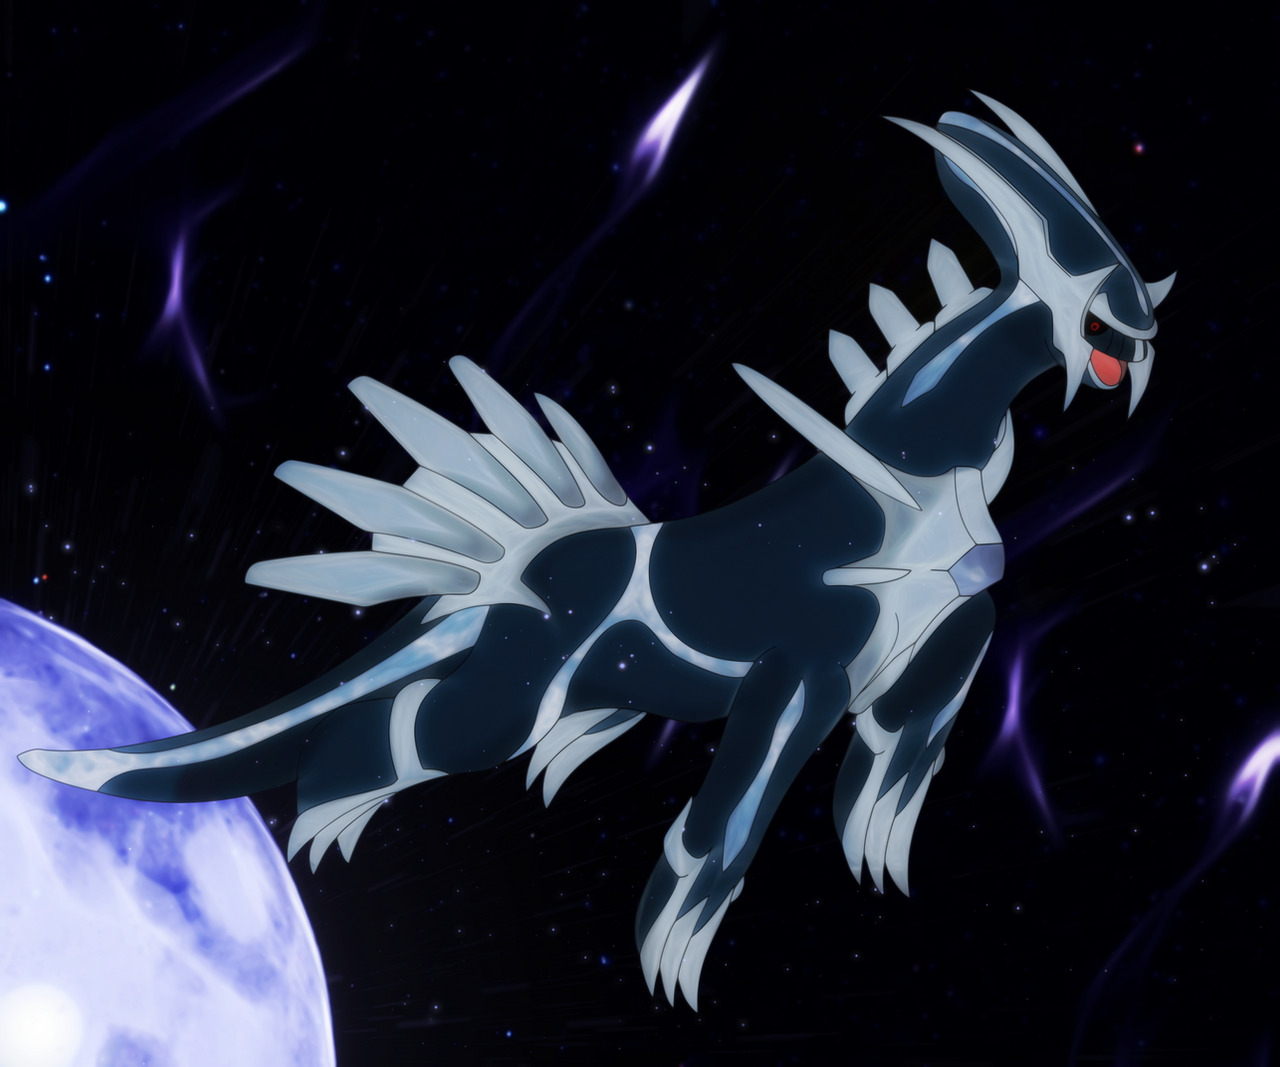 http://img03.deviantart.net/0f1b/i/2011/016/b/2/dragon_of_time_dialga_by_blooddragonx-d37bgxy.png